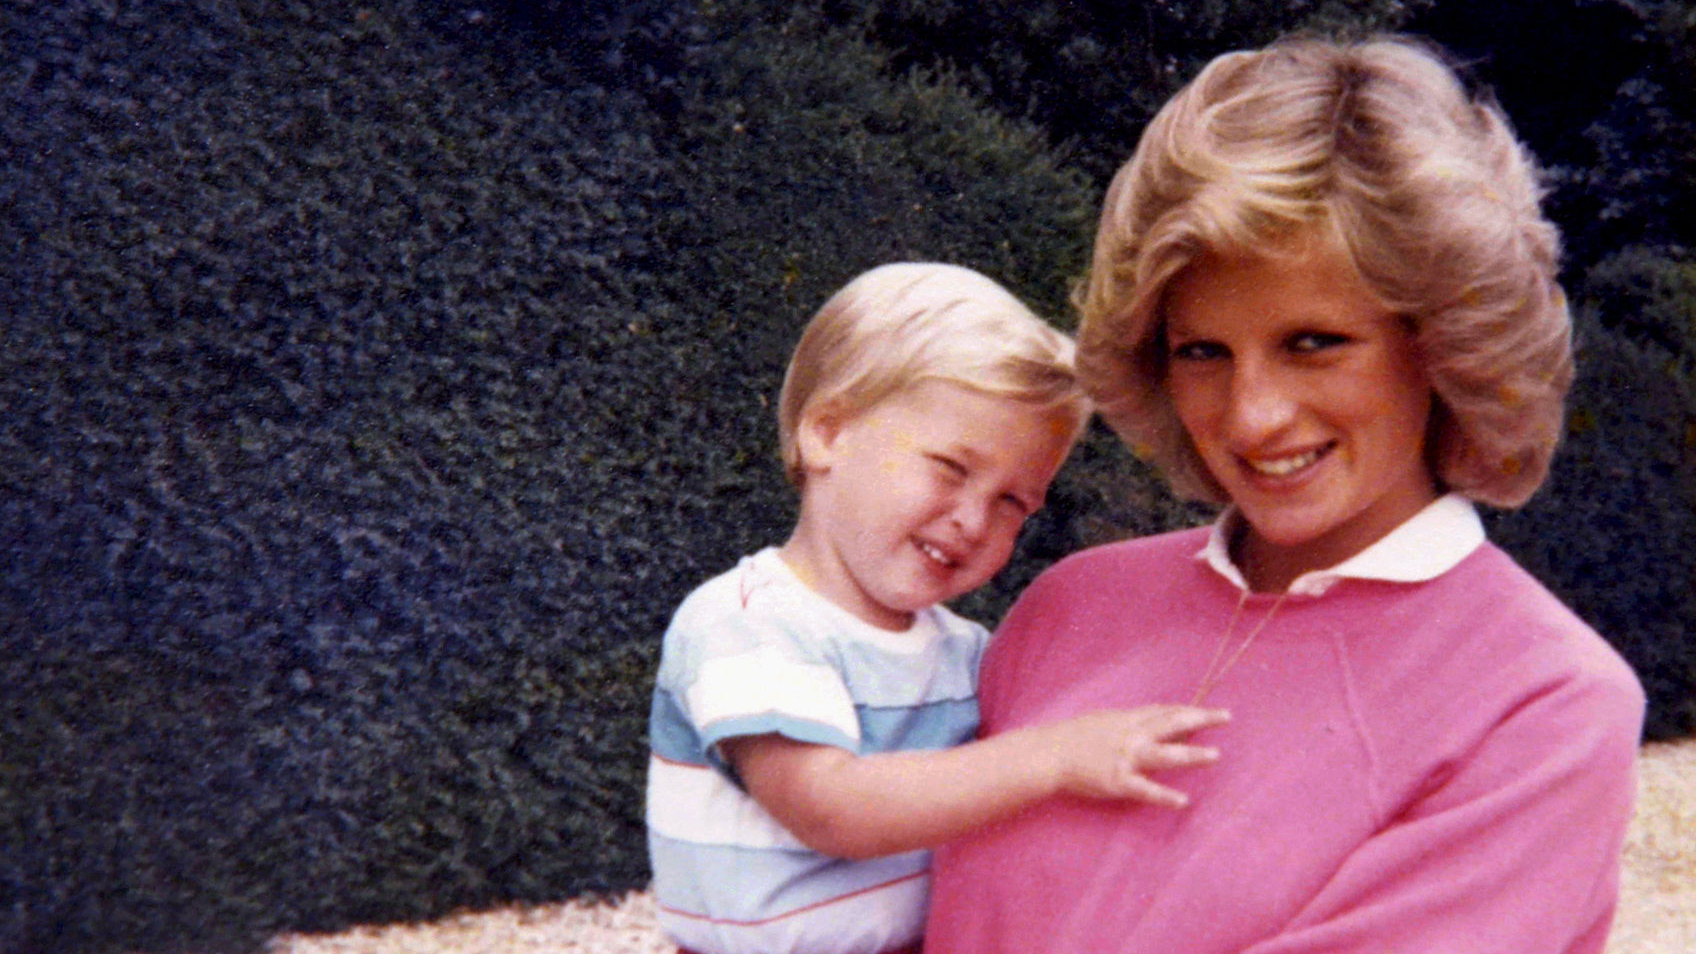 Prince William Opens Up About How Prince George Takes After Princess Diana